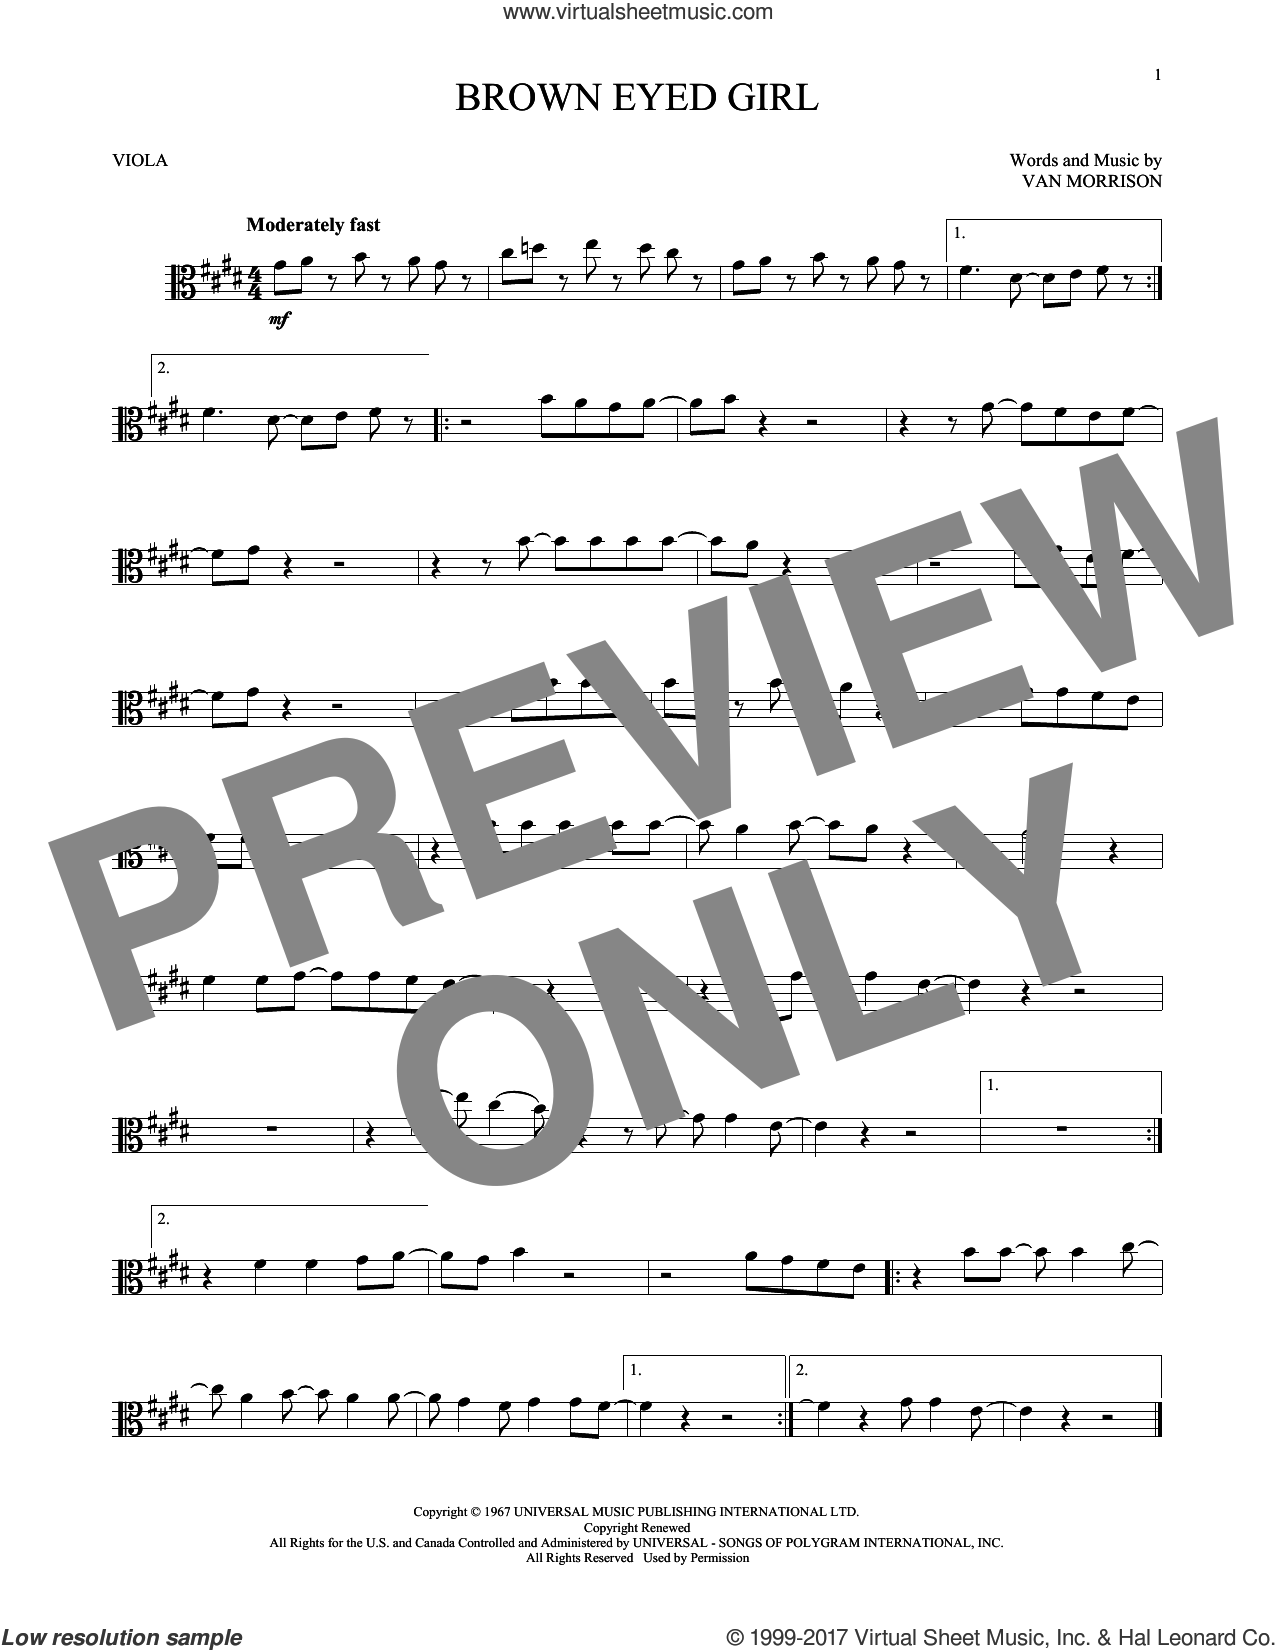 Brown Eyed Girl sheet music for viola solo by Van Morrison, intermediate skill level